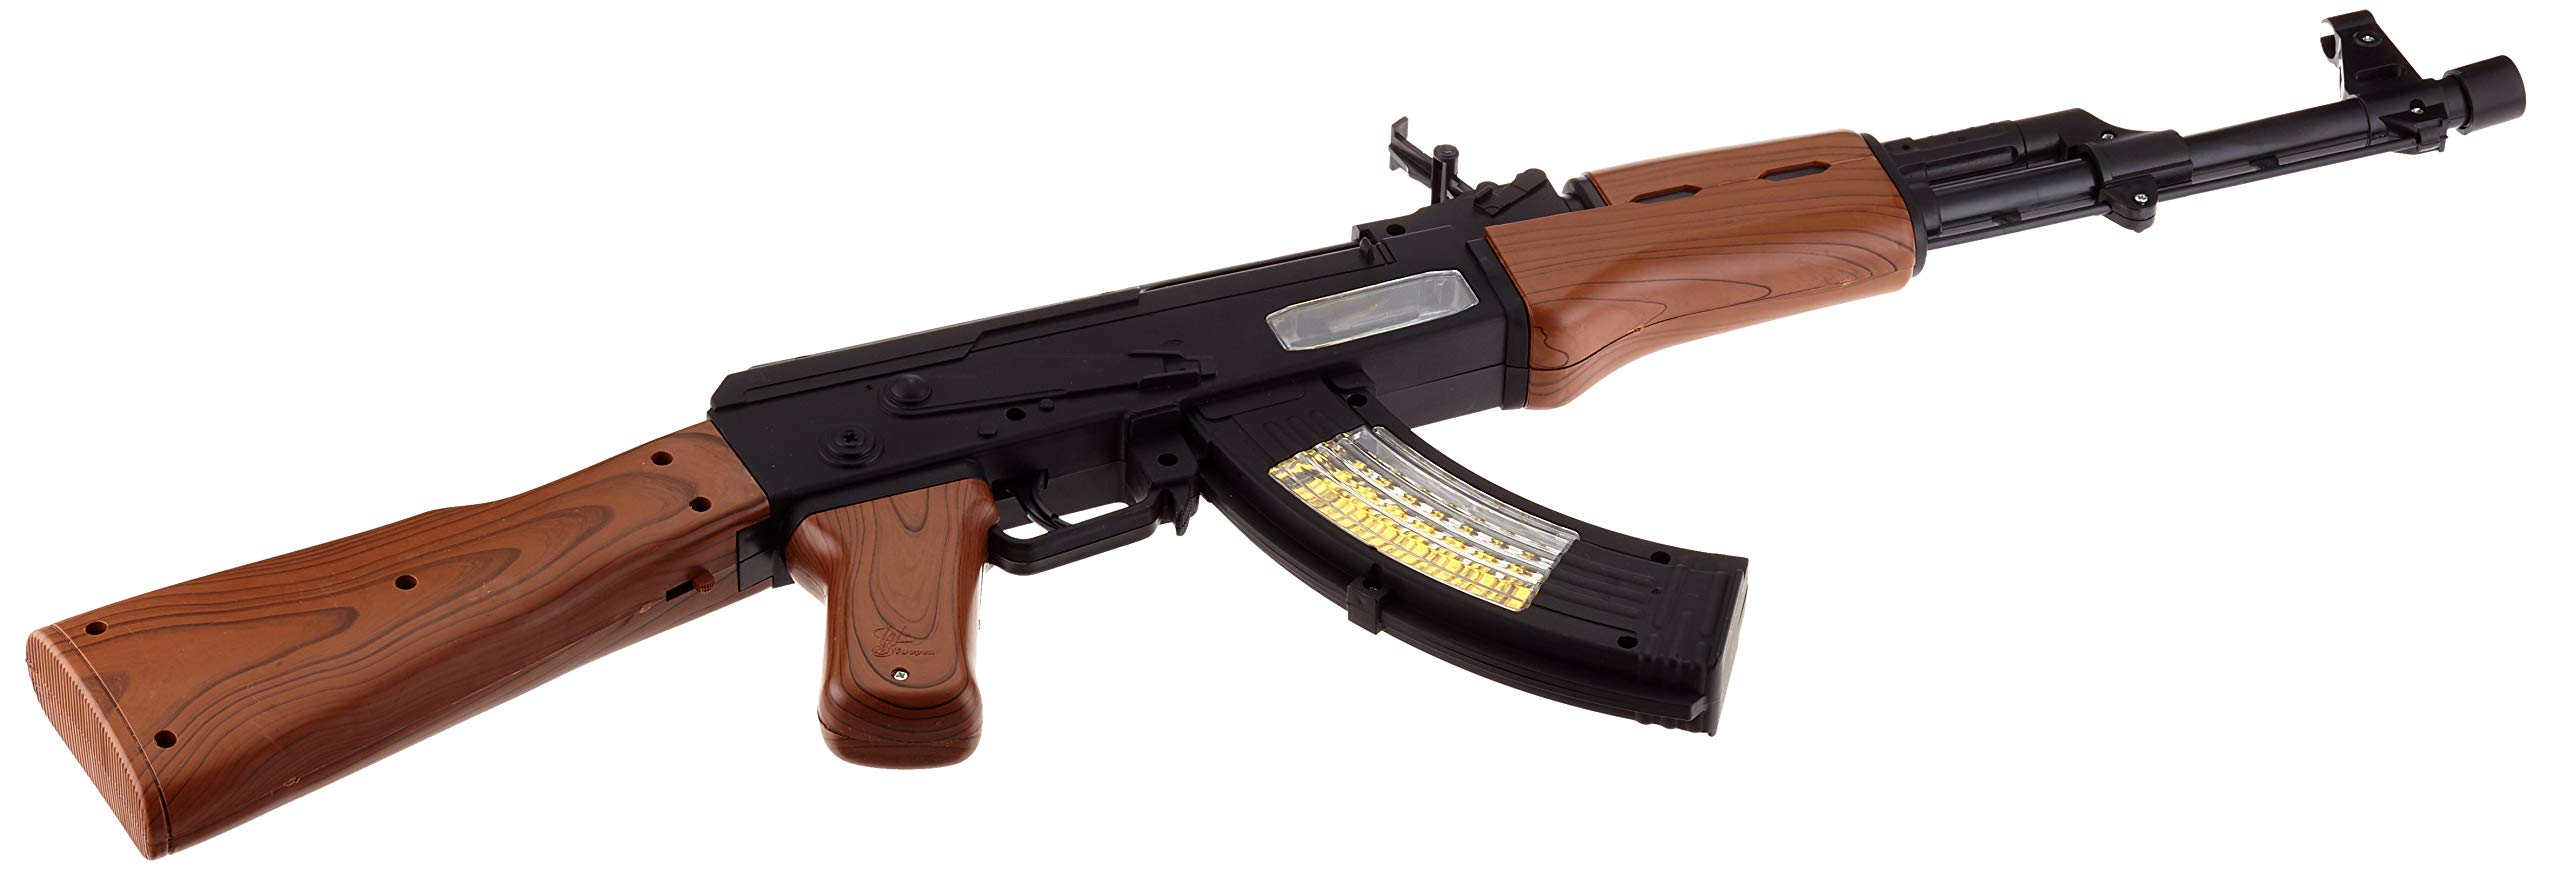 Kombat AK47 Toy Gun with Lights & Sound